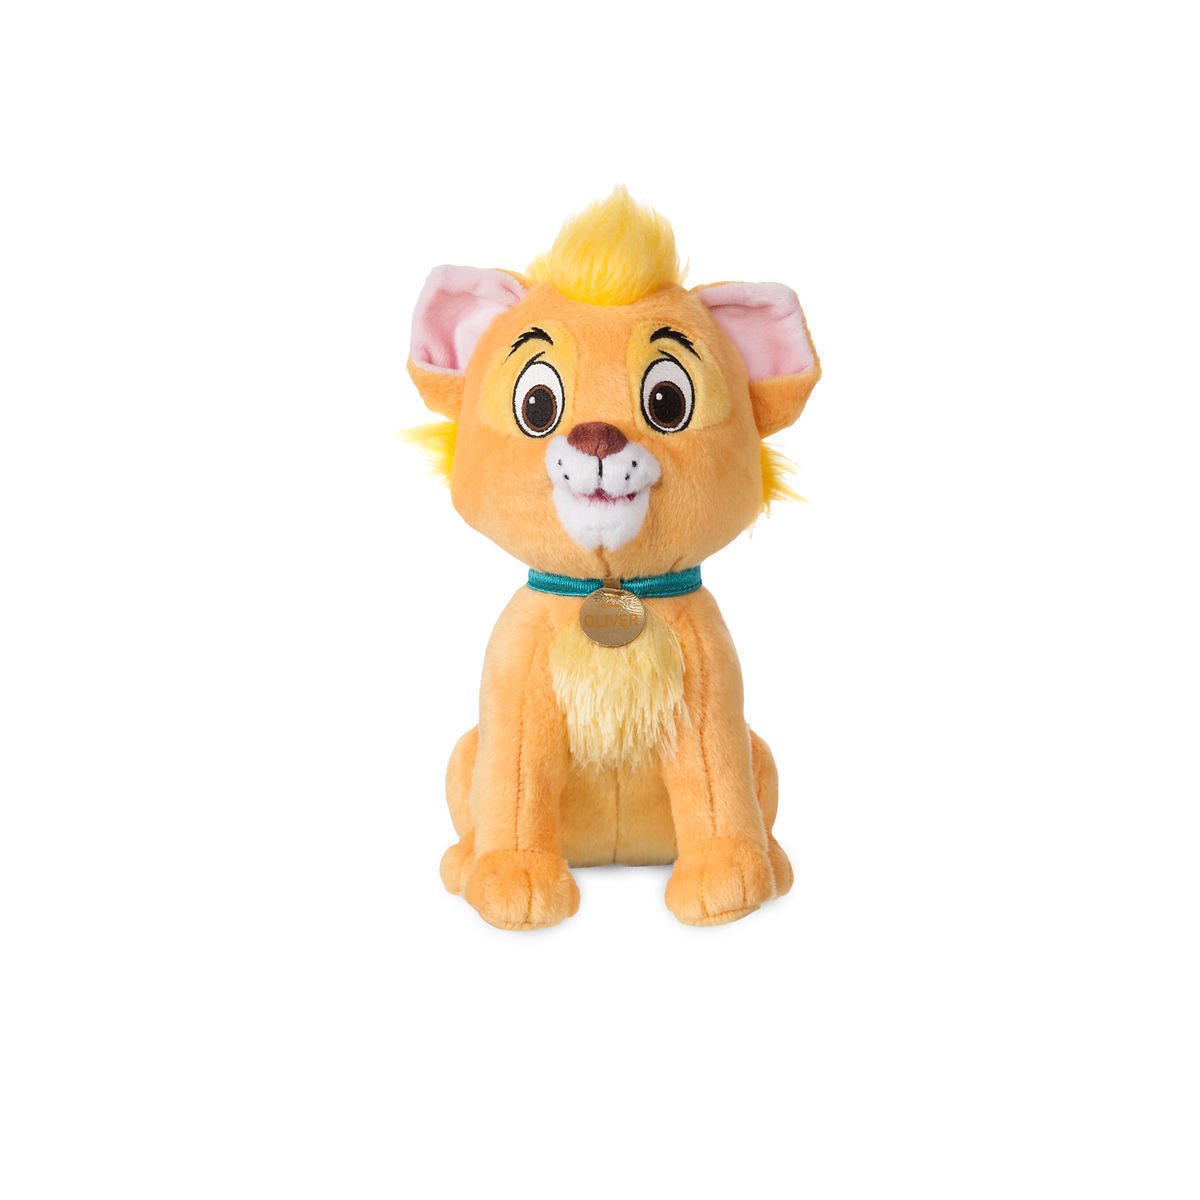 Disney Oliver & Company Oliver Small Plush New with Tags